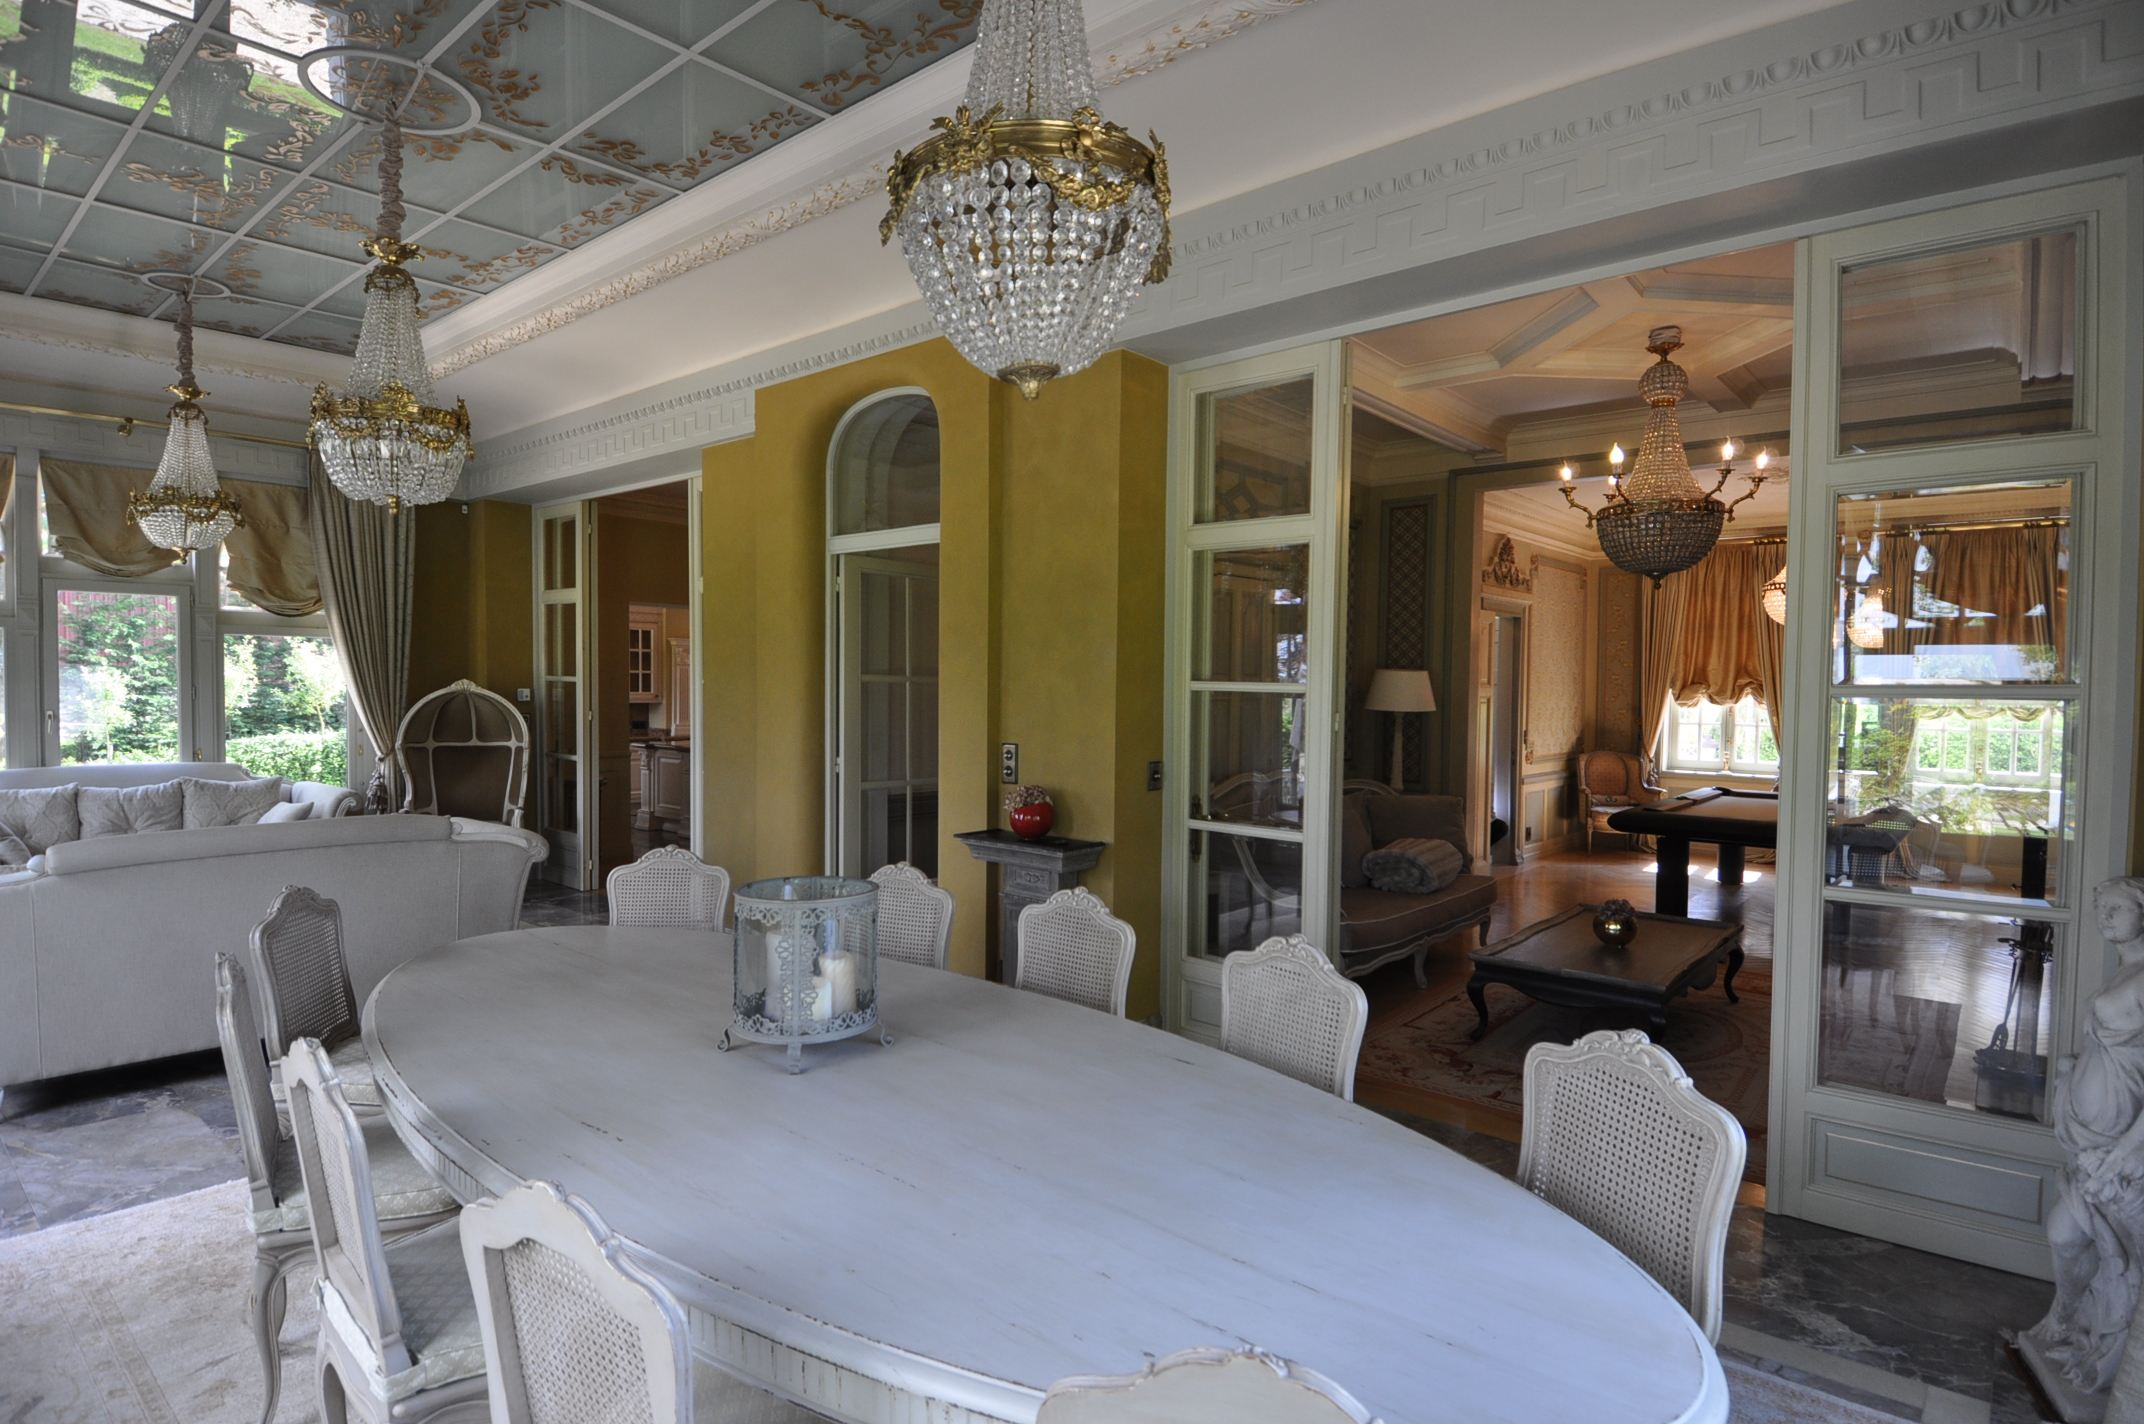 Single Family Home for Sale at THE PEVELE, Charming Mansion 460 m2 hab, 4 bedrooms, total luxury Other France, Other Areas In France 59246 France